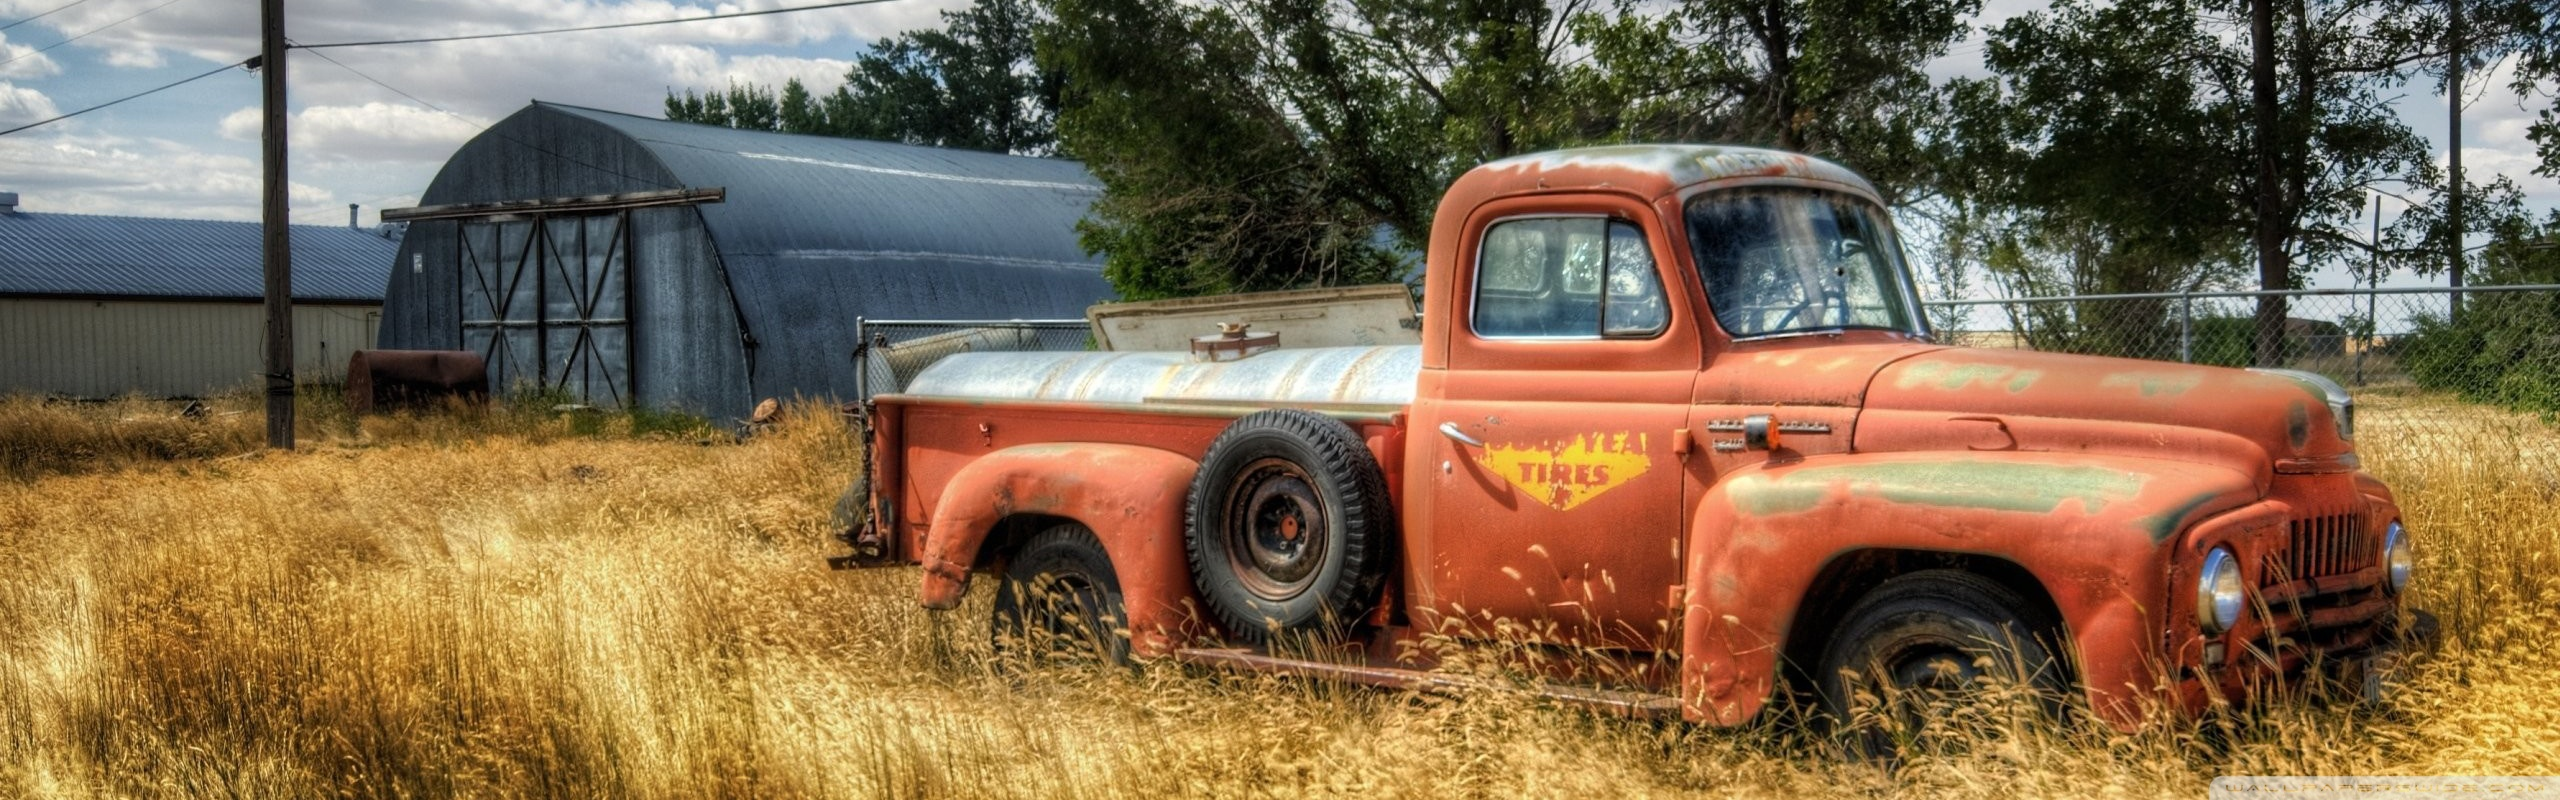 Classic-Truck-HD-desktop-High-Definition-Fullscreen-wallpaper-wp3803825